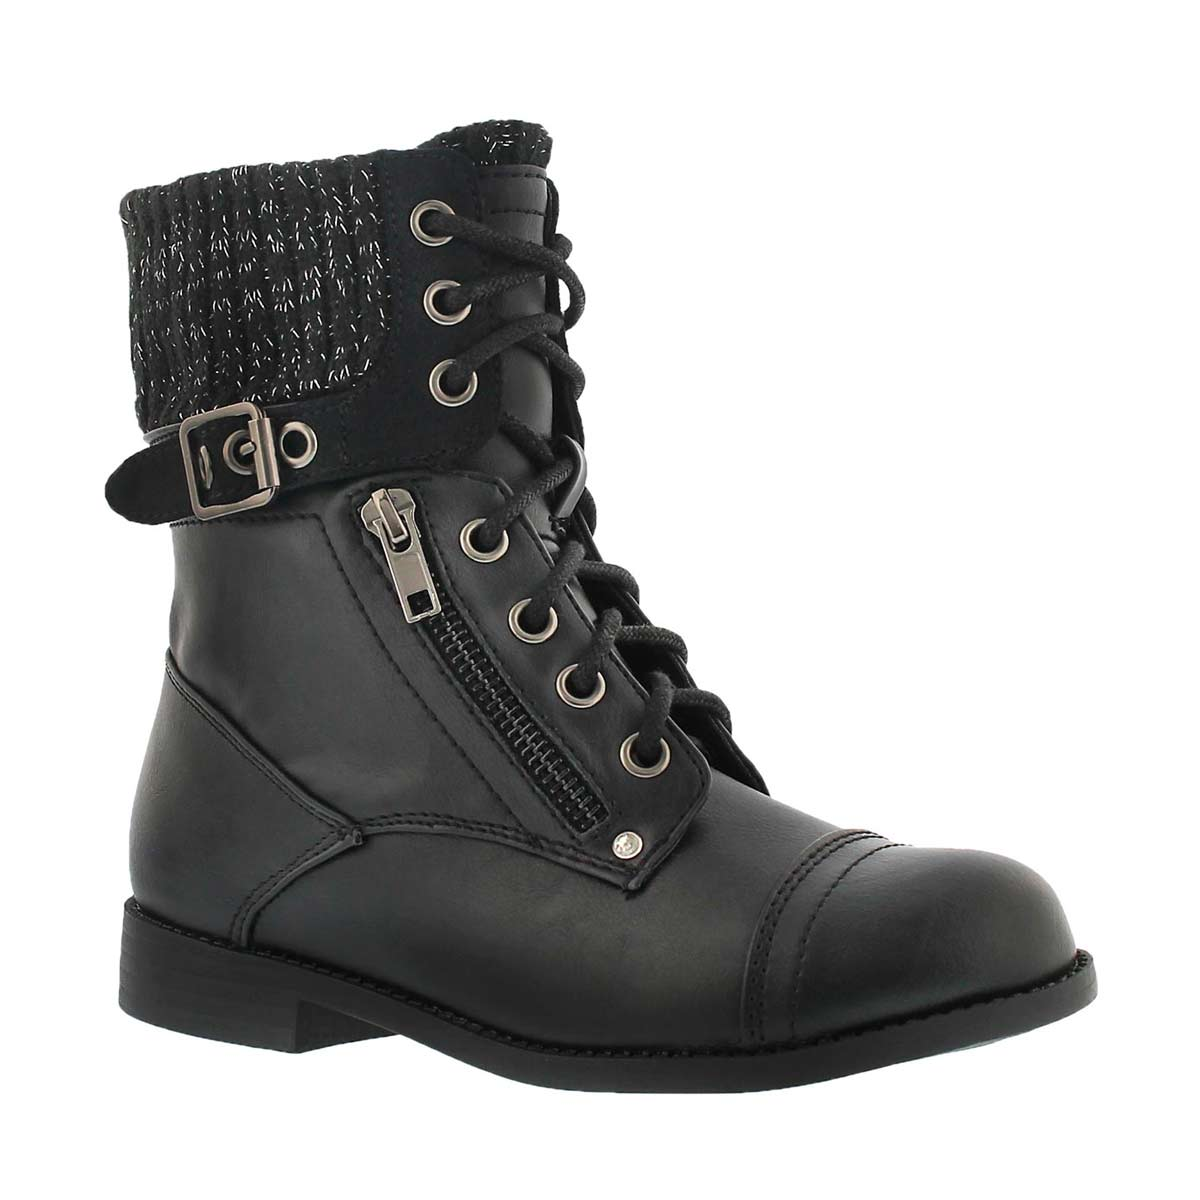 Girls' LORI black casual combat boots